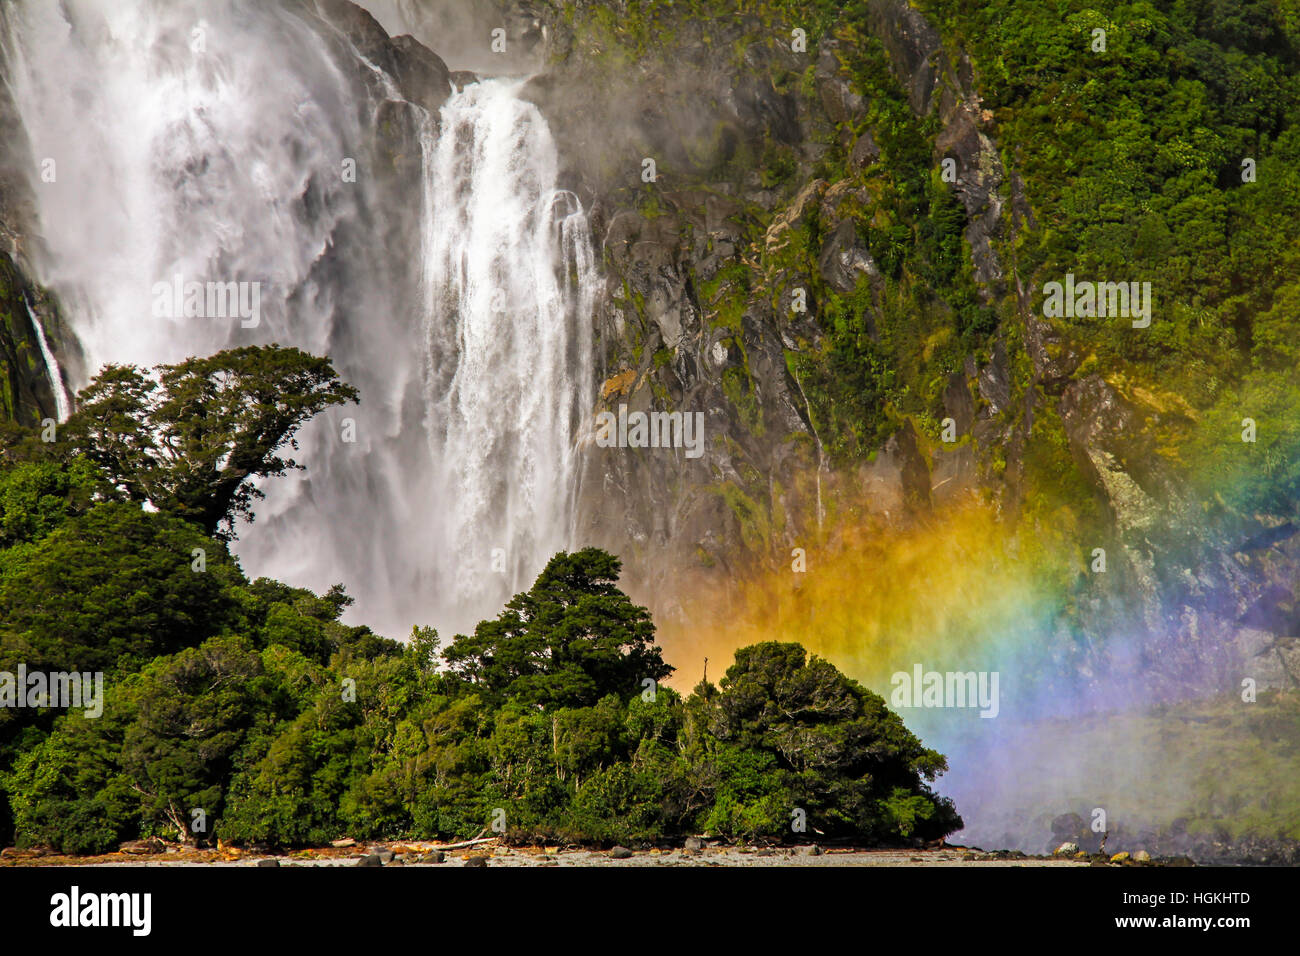 Lush Rainforest and Thundering Bowen Waterfall Landscape at Mouth of Milford Sound in Fiordland National Park, New - Stock Image